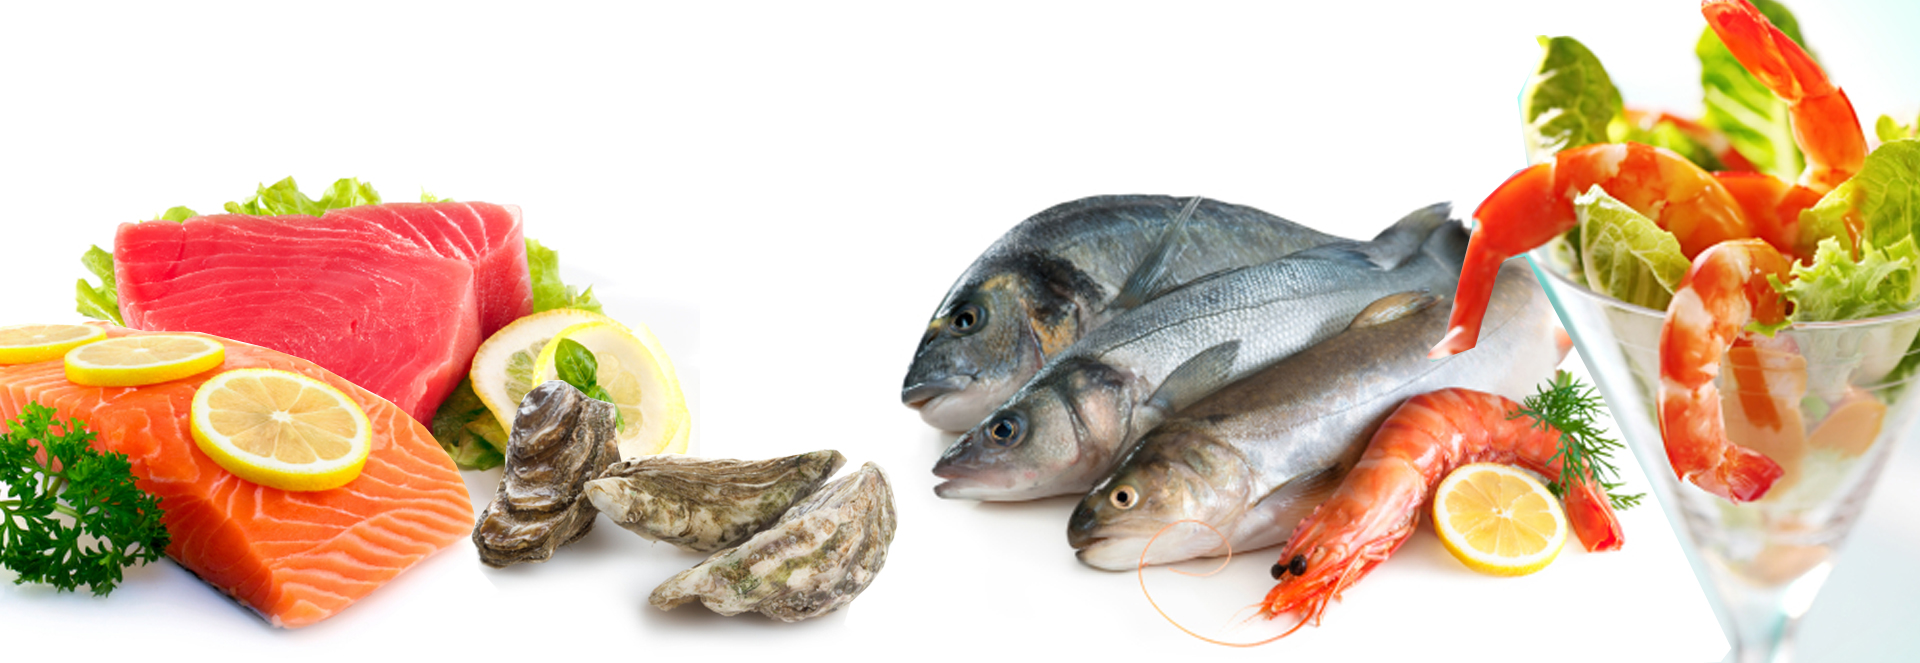 About us seafood online canada for Fresh fish online